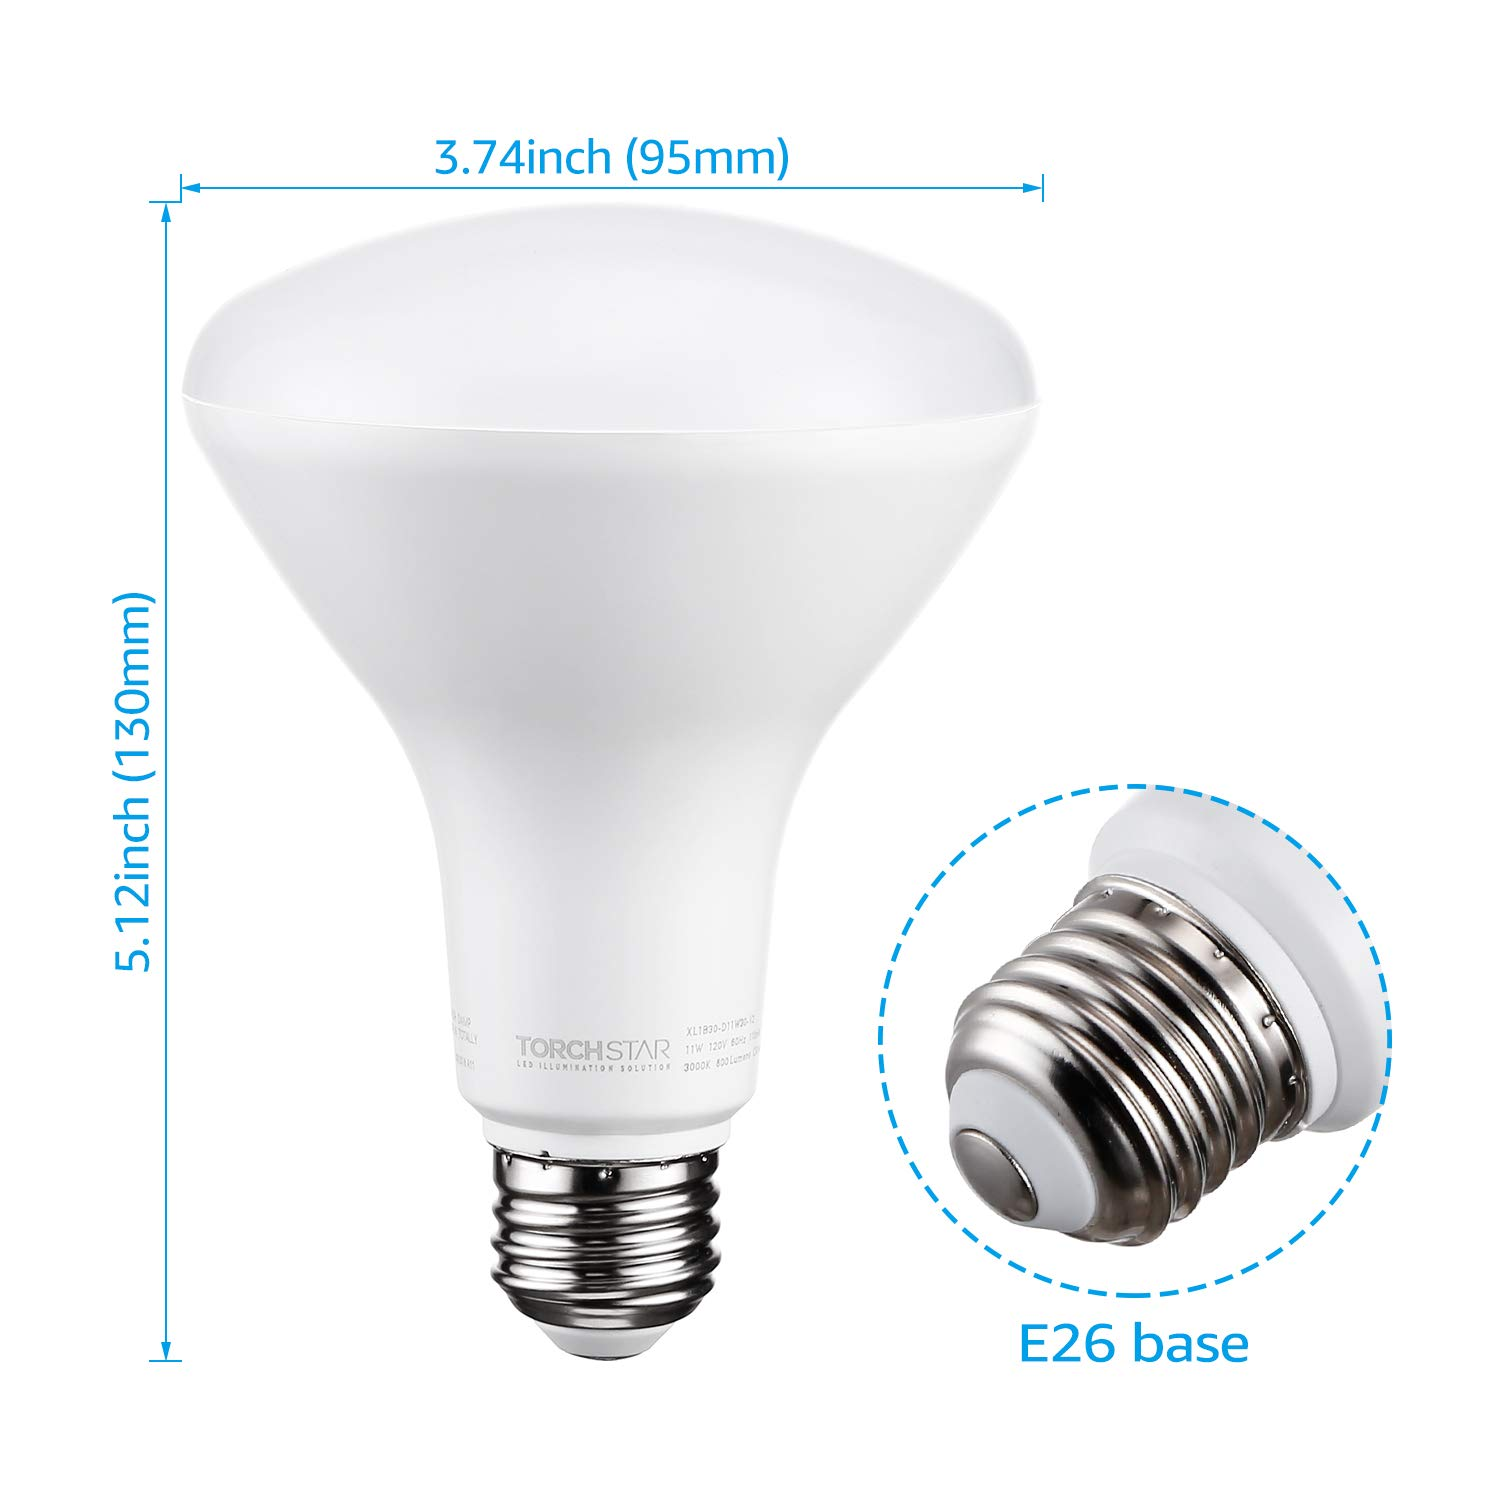 Pack of 6 E26 Base 800 Lumens 11W Energy Star JA8 and CEC3.0 Certified TORCHSTAR Dimmable LED BR30 Flood Light Bulb UL 65W Equivalent 3 Years Warranty 3000K Warm White CRI90+